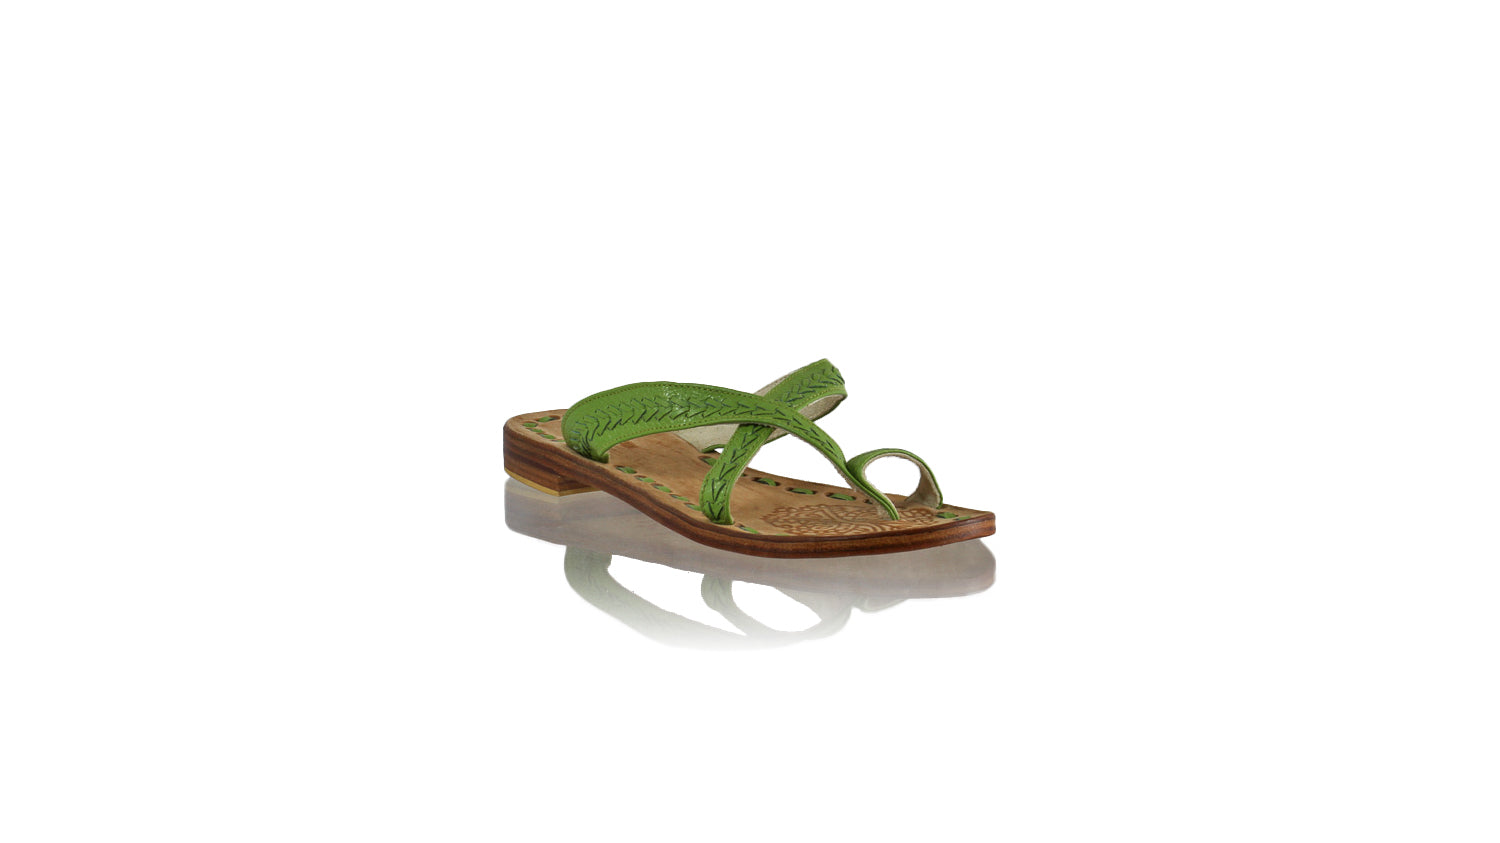 Leather-shoes-Romance Without Strap 20mm Flat - All Green BKK-sandals flat-NILUH DJELANTIK-NILUH DJELANTIK